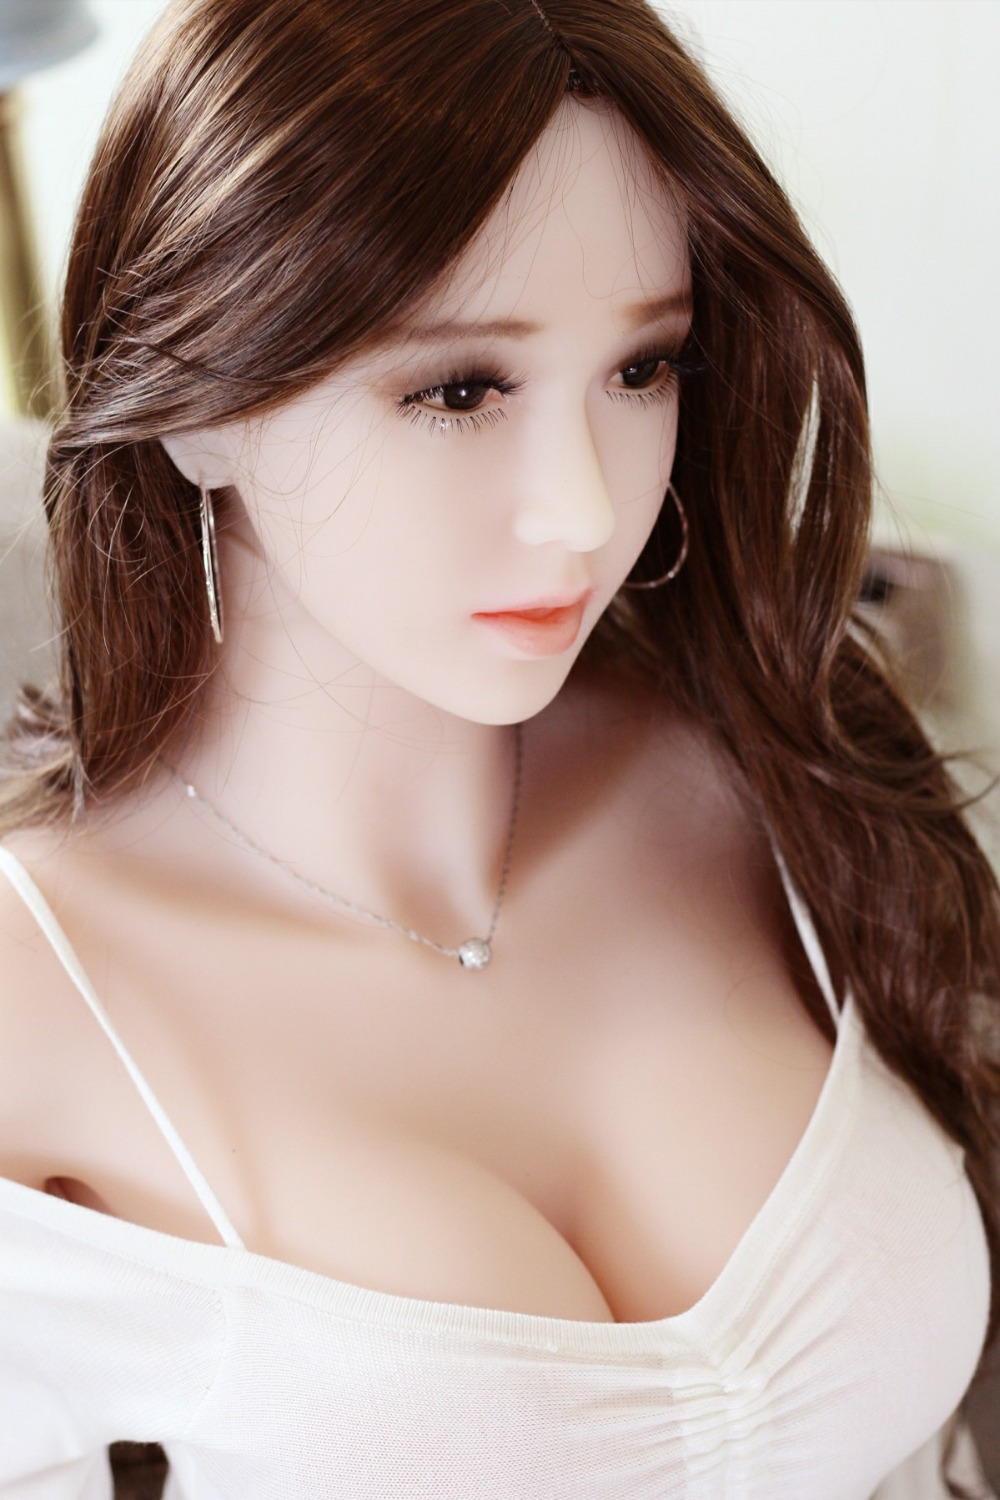 WMdoll 165cm big breast sex dolls for men TPE sexy doll adult toys Japanese Full Silicone Love doll 2